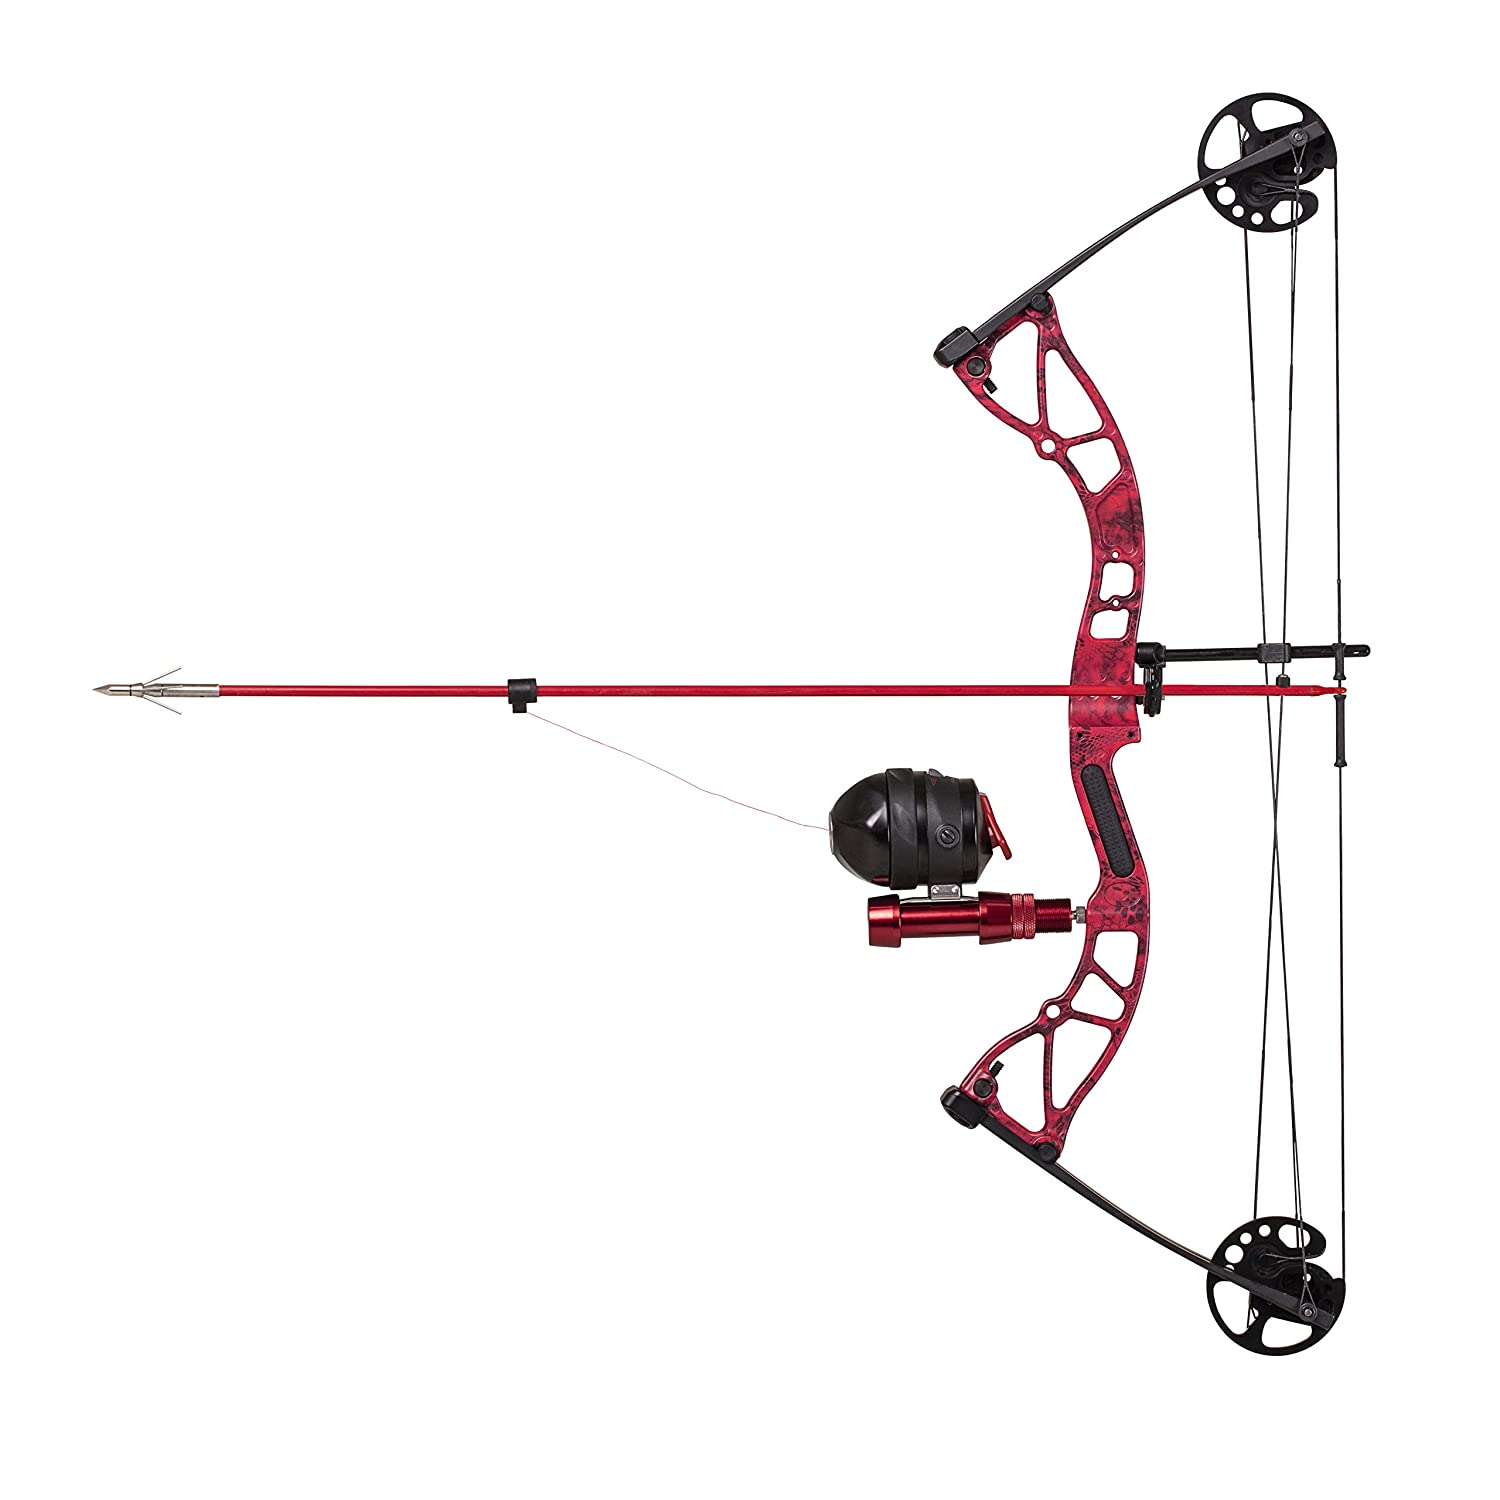 Bowfishing Reel Red//Black Reel Seat Blister Buster Finger Pads Cajun Bowfishing Shore Runner Kit Compound Bowfishing Bow Ready to Fish Kit with Arrow Rest Fiberglass Arrow